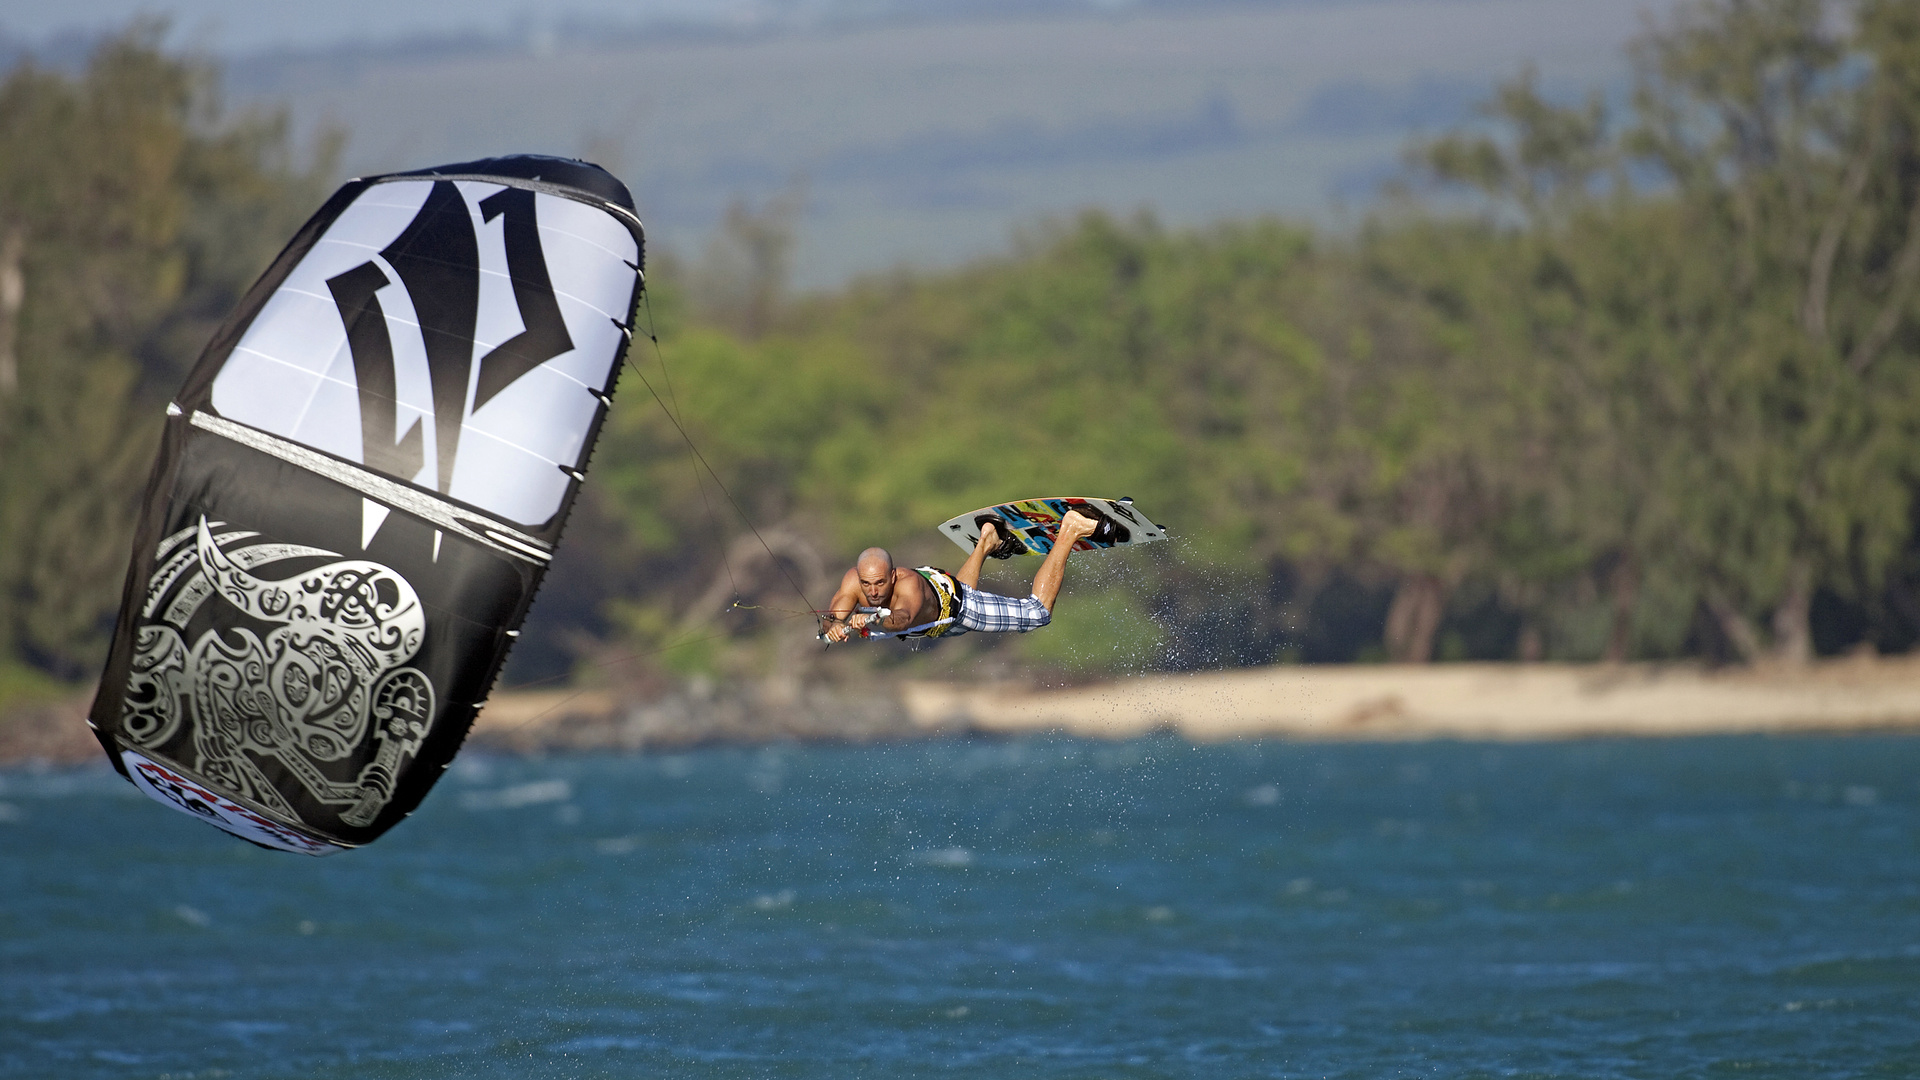 kitesurf wallpaper image - going for the max - kiteloop by naish - in resolution: High Definition - HD 16:9 1920 X 1080